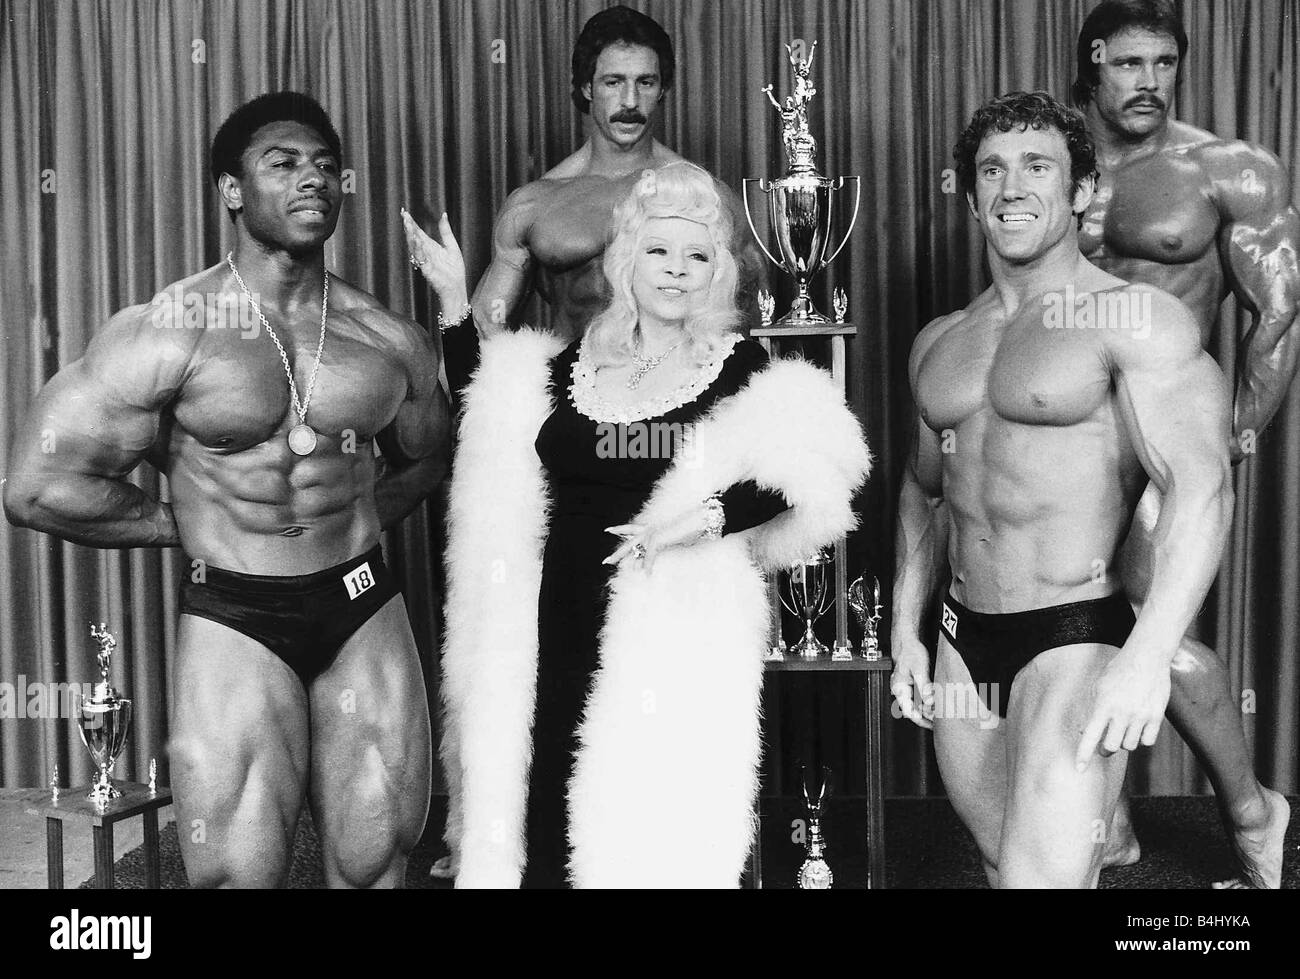 Mae West Actress a the Mr America Contest August 1977 dbase msi - Stock Image